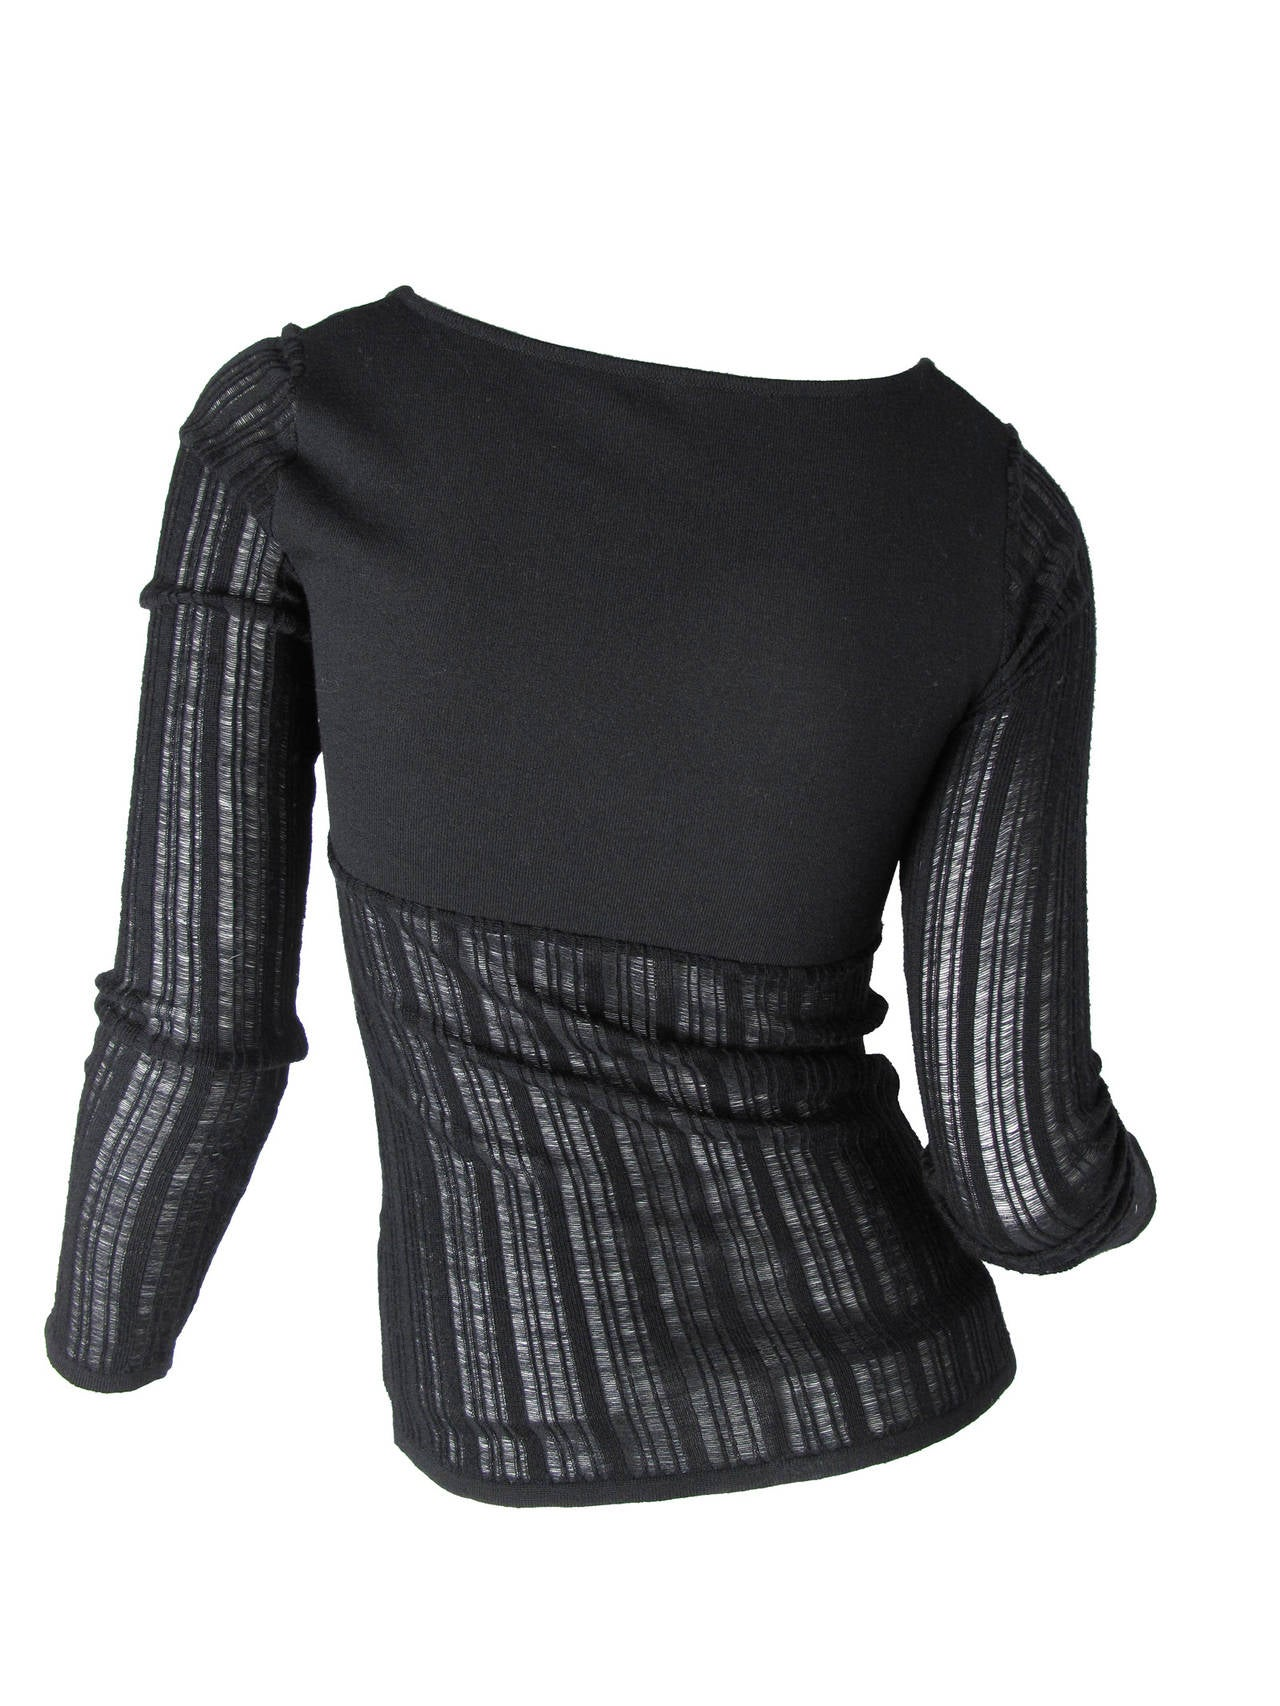 Black Gianni Versace knit sweater For Sale